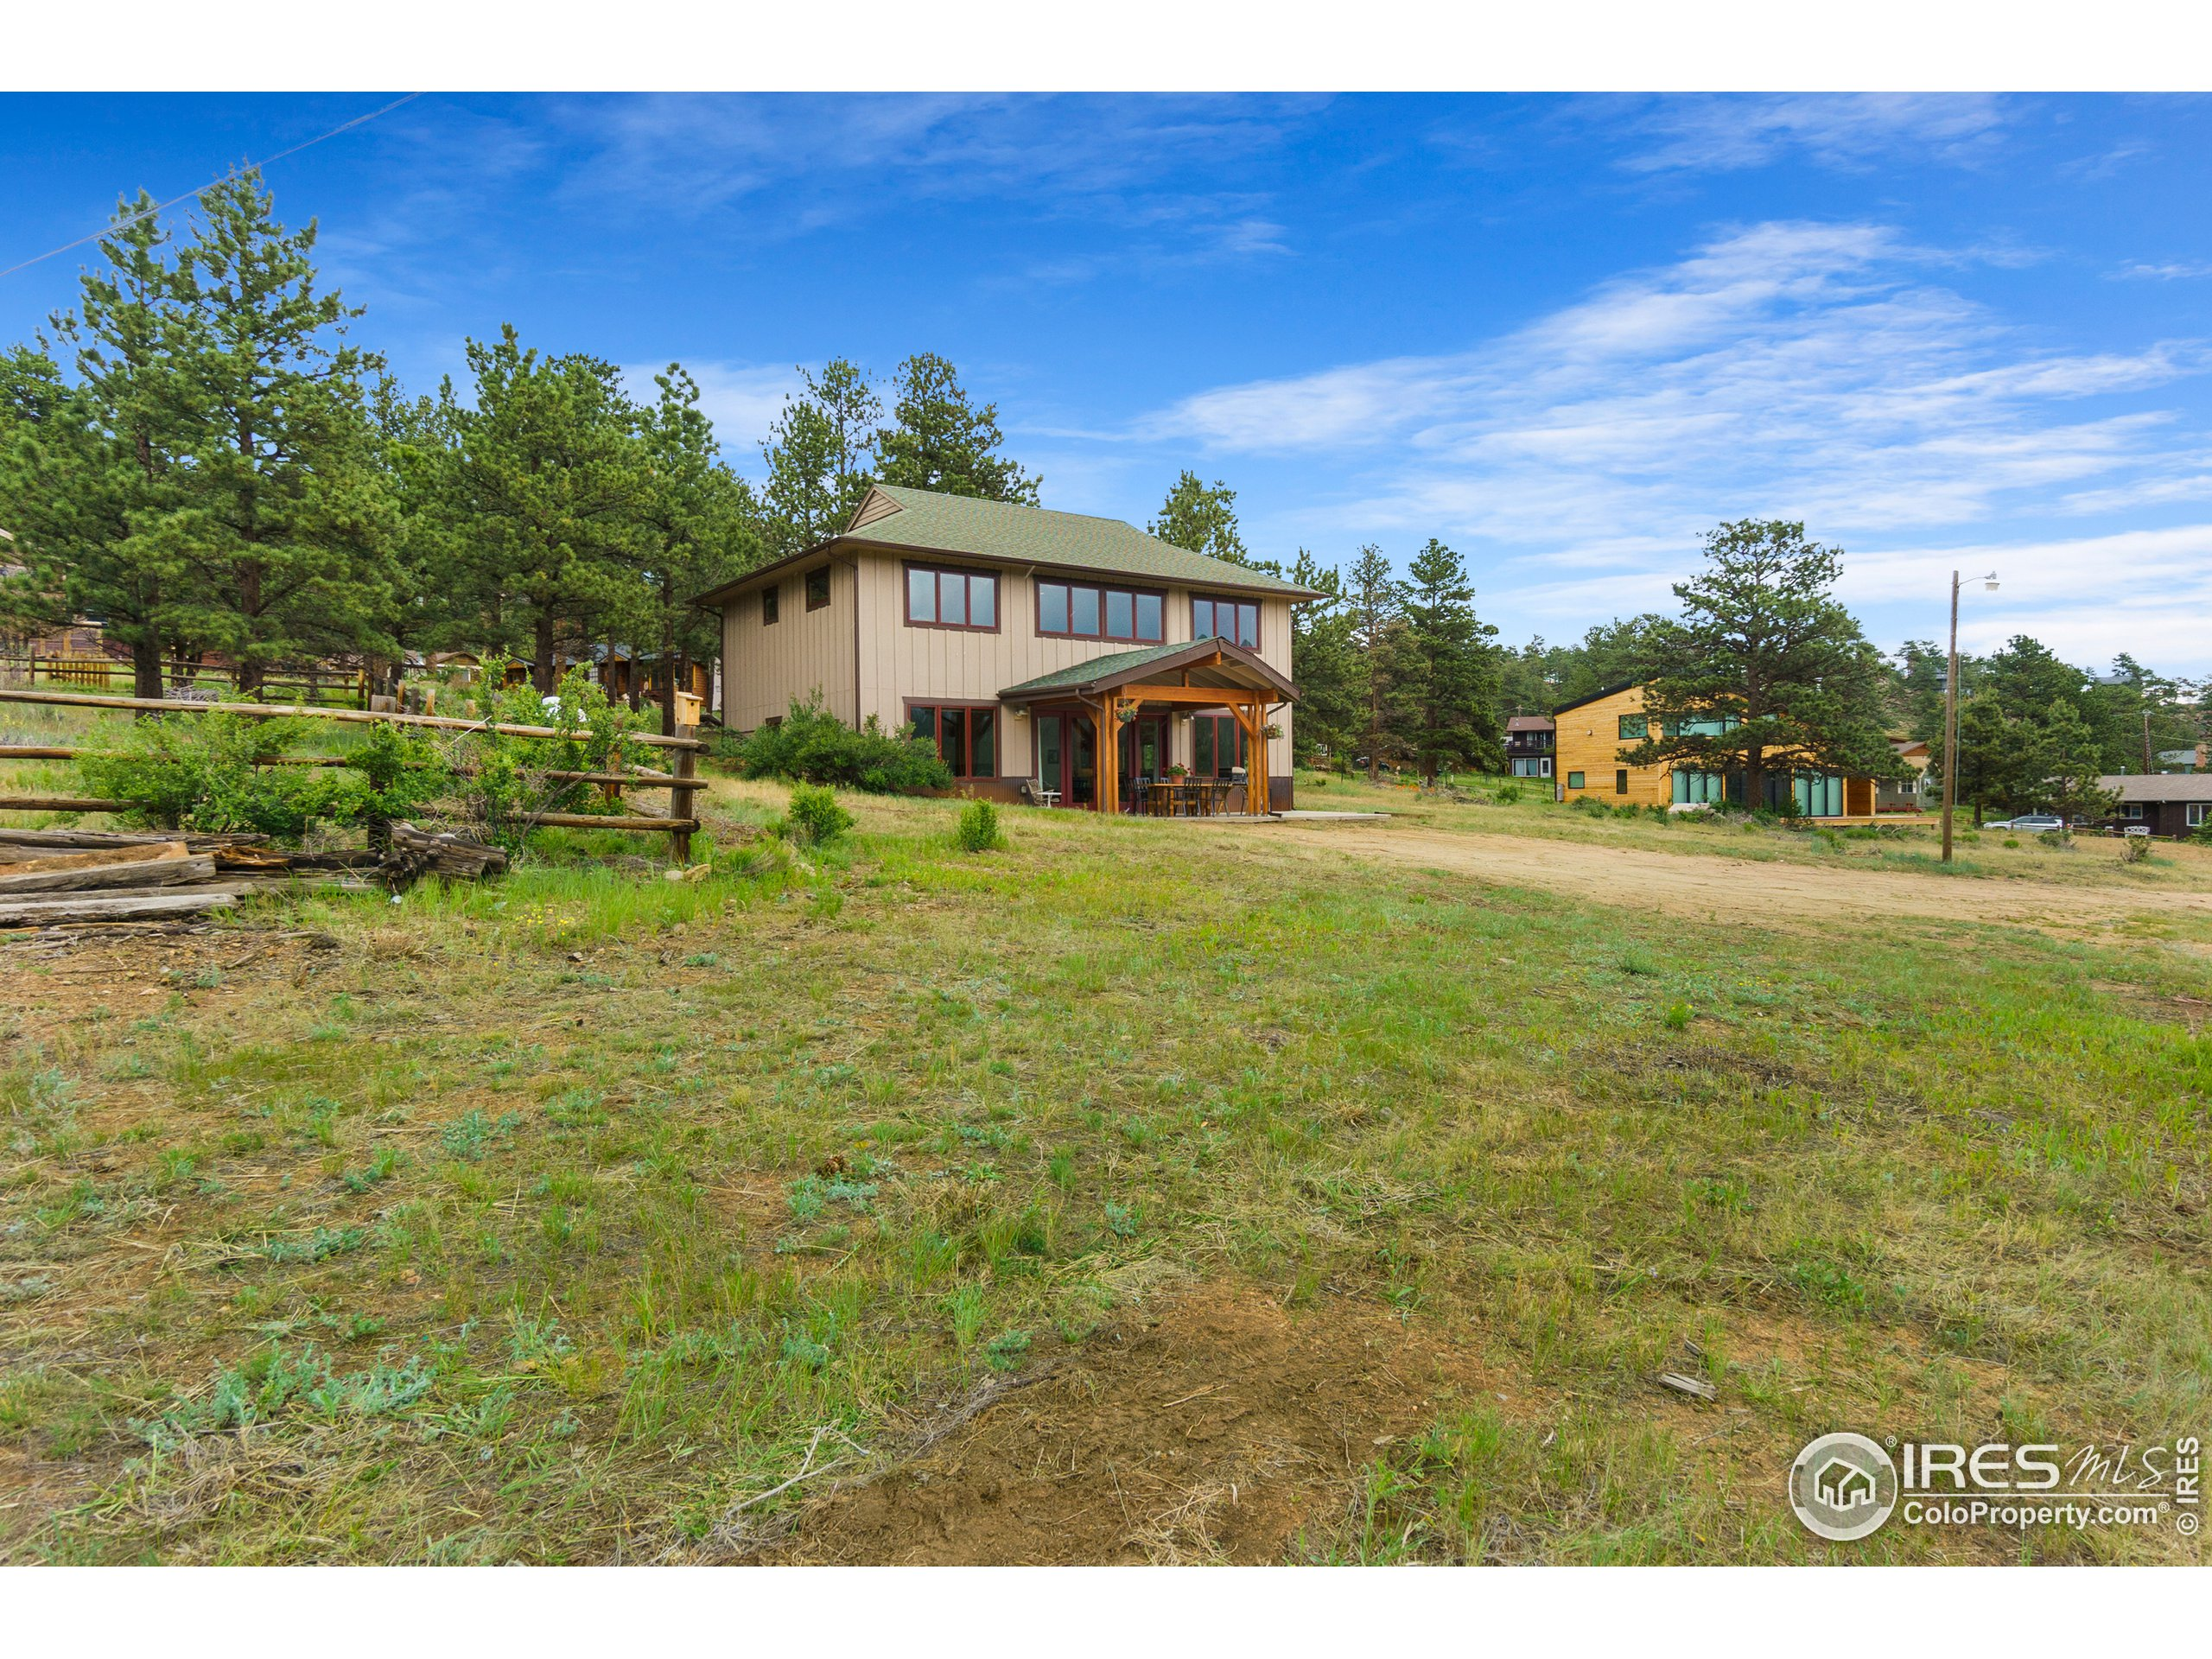 Close to 1 acre parcel in town